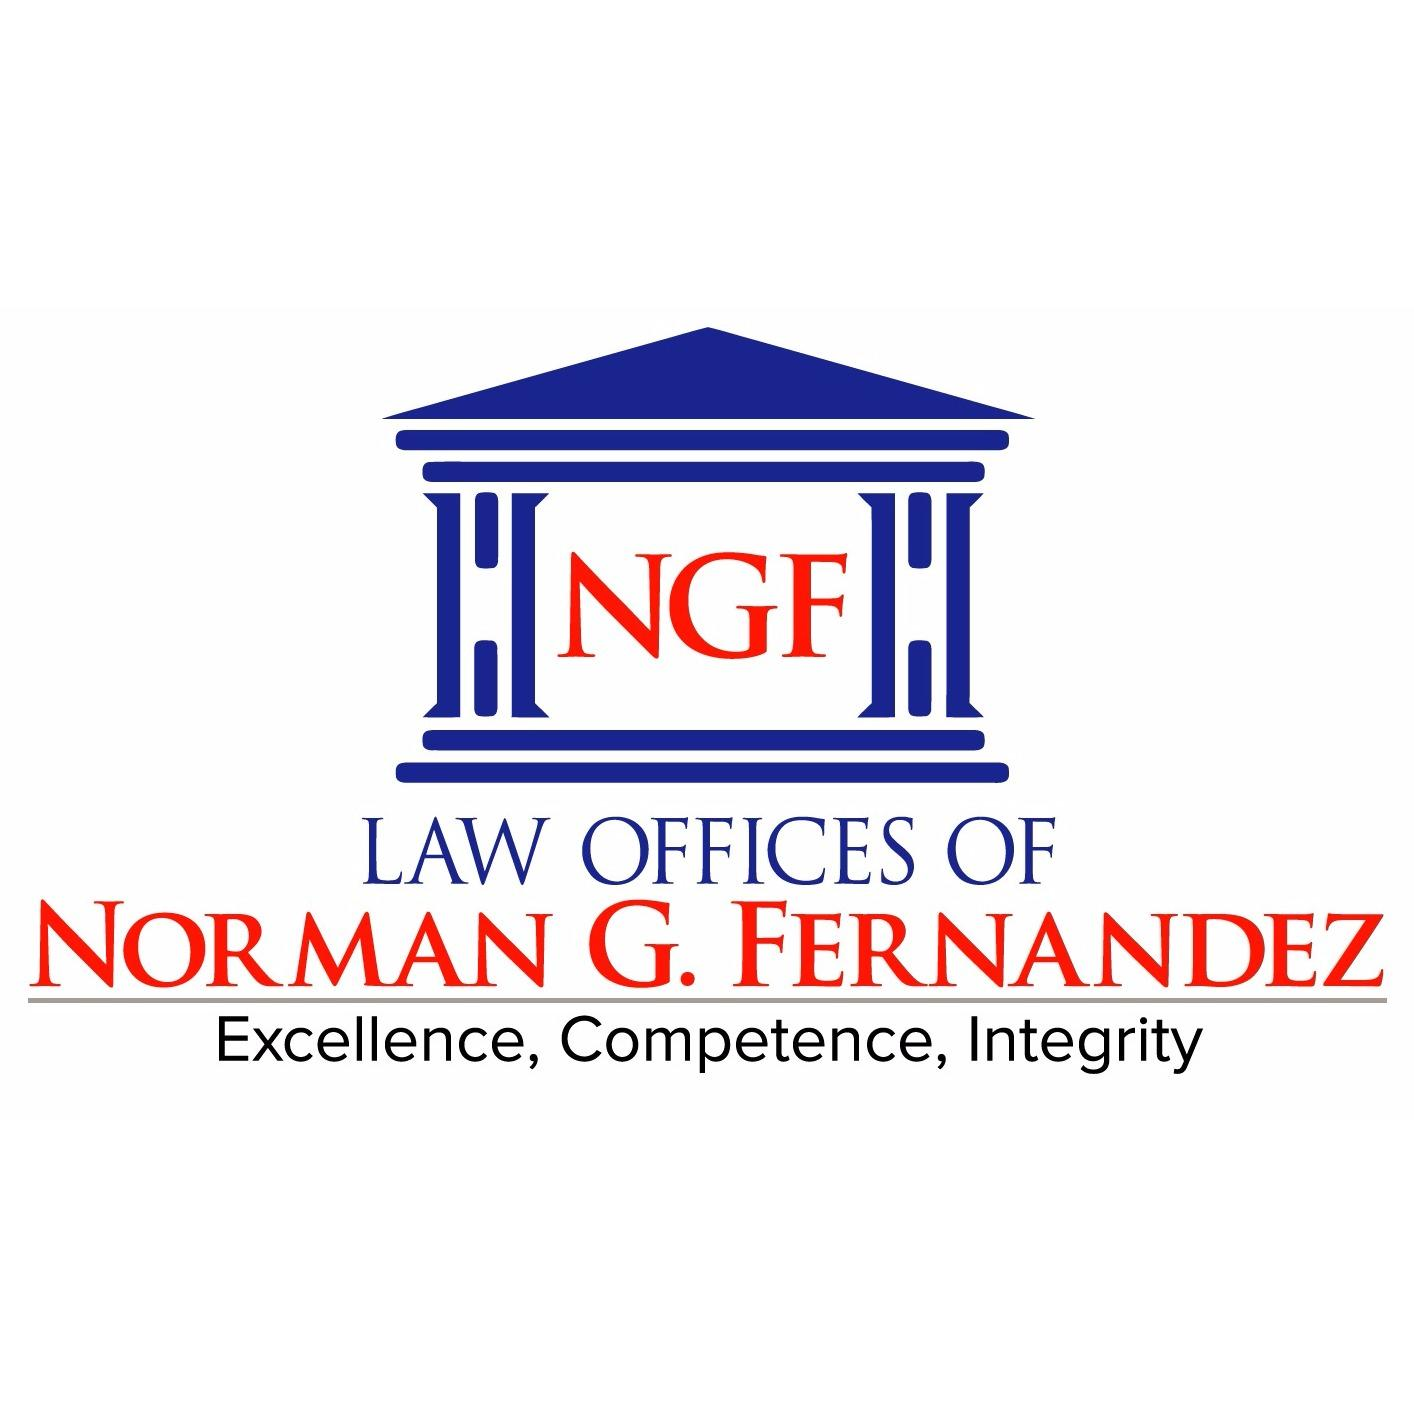 The Law Office of Norman Gregory Fernandez